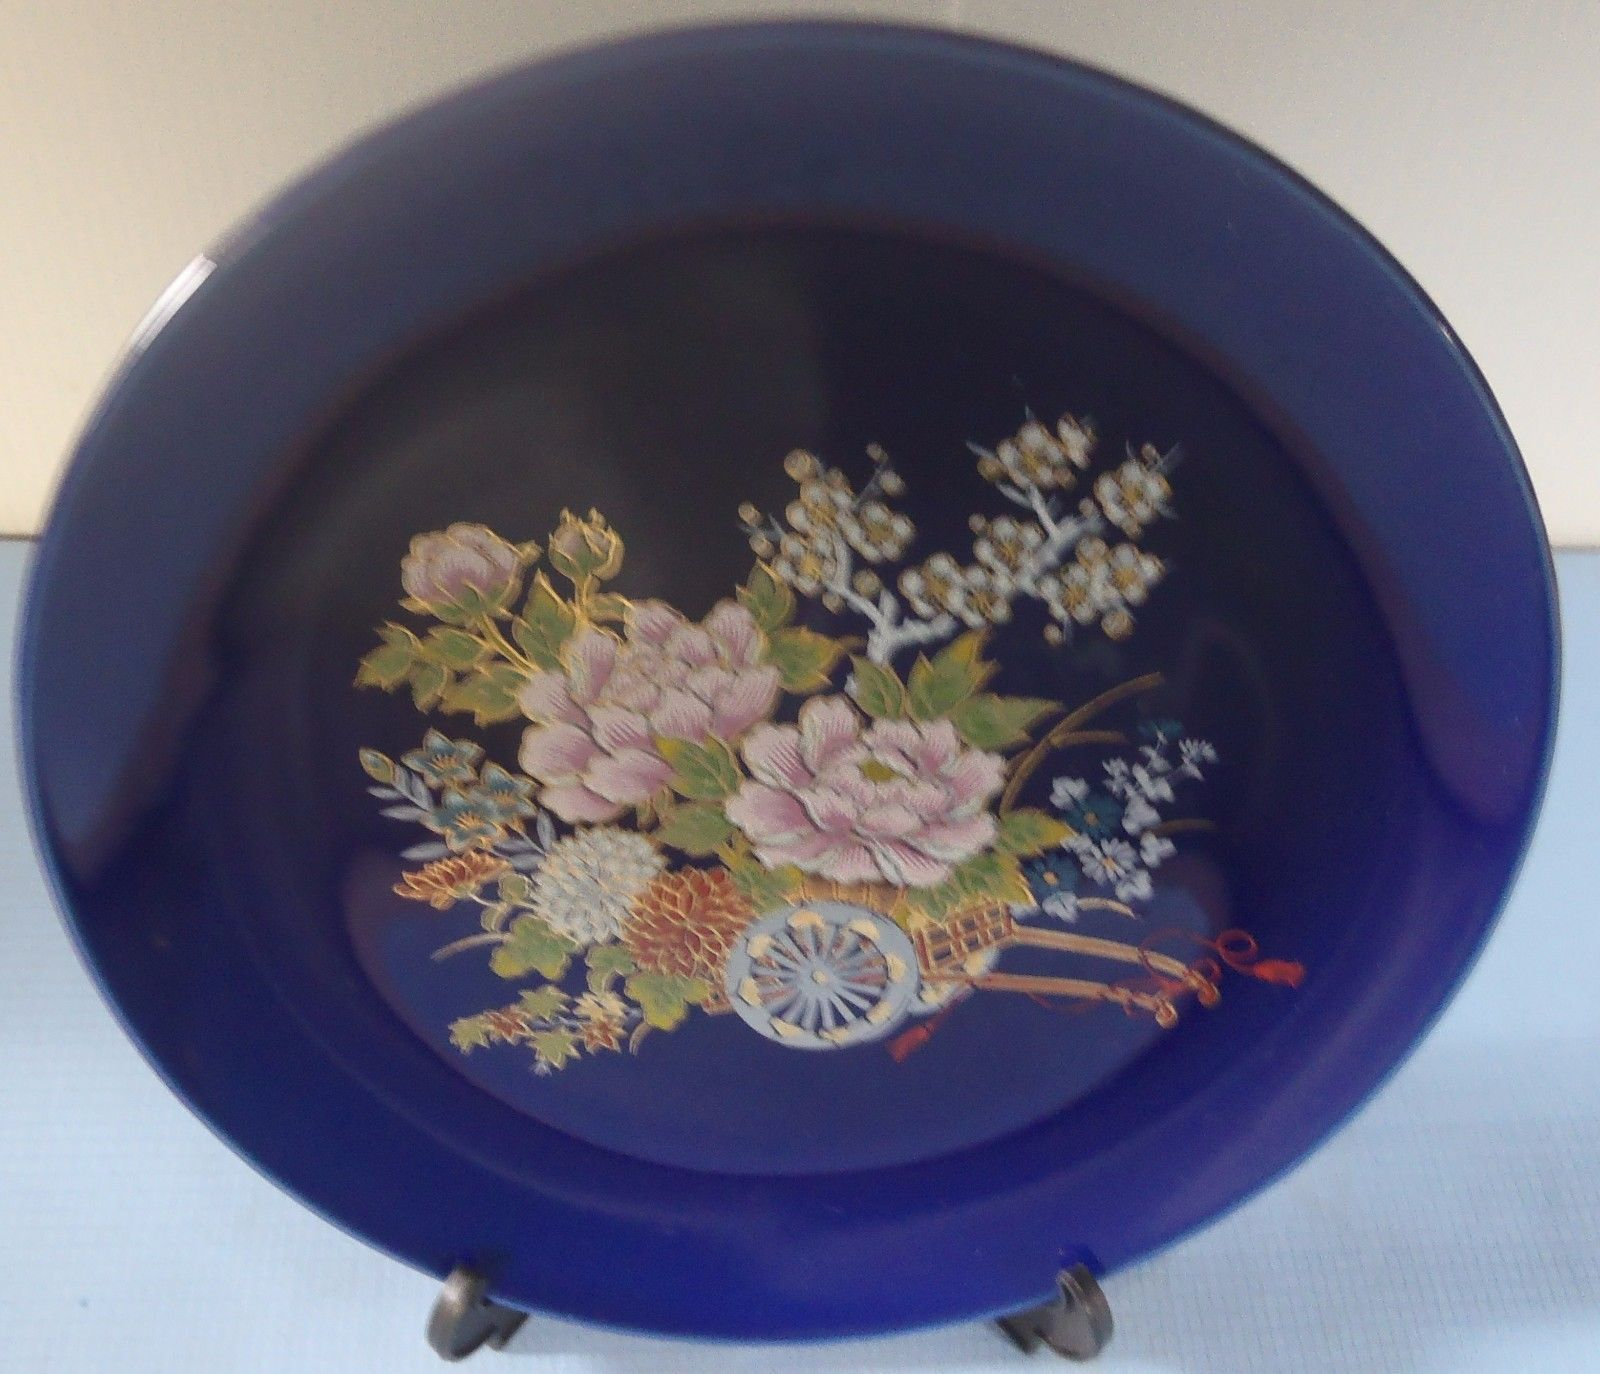 Vintage Japanese porcelain plate cobalt blue flower cart  made in Japan easel  7